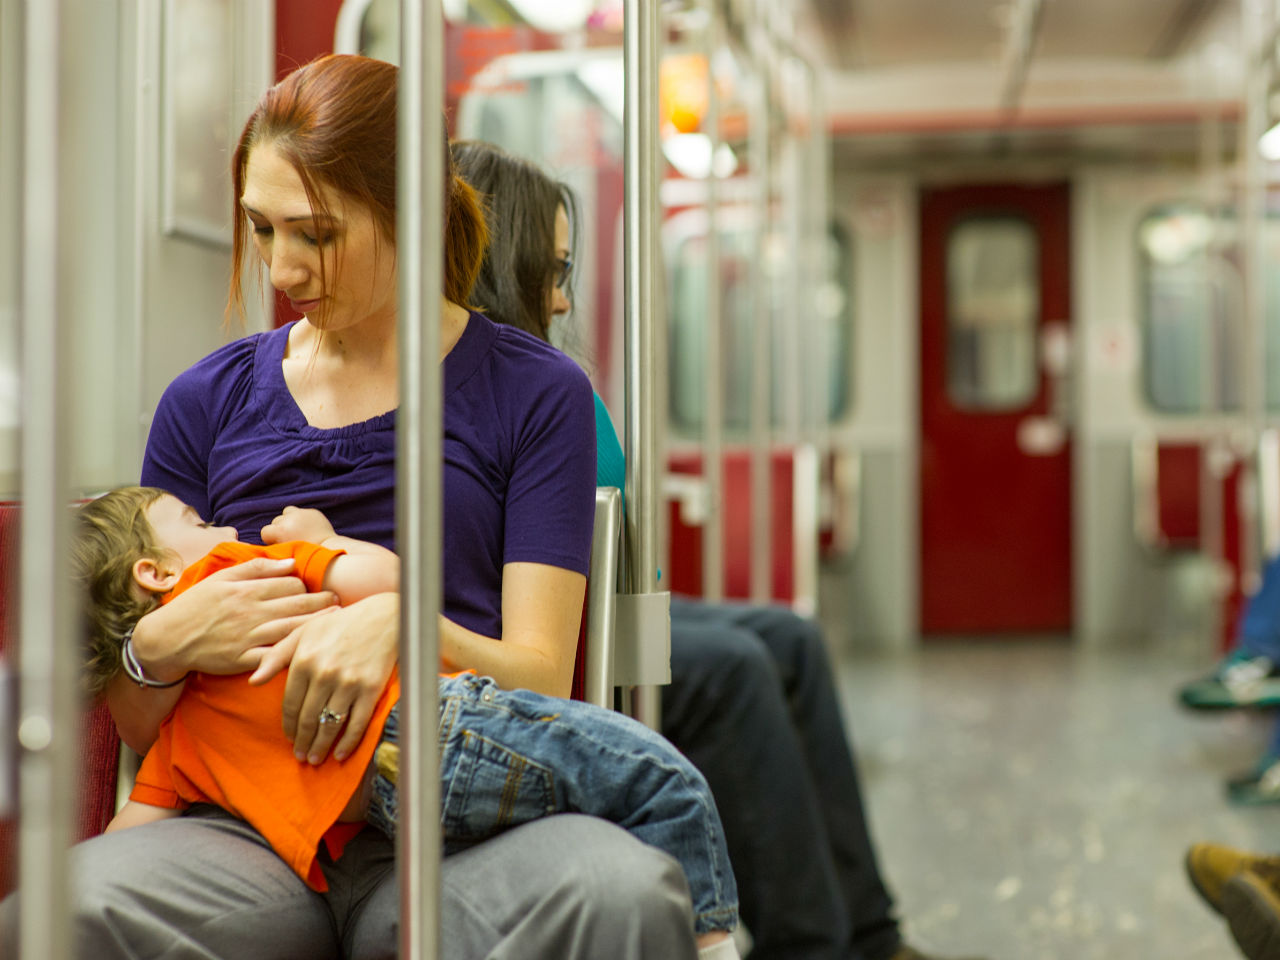 mother breastfeeding her toddler on the subway